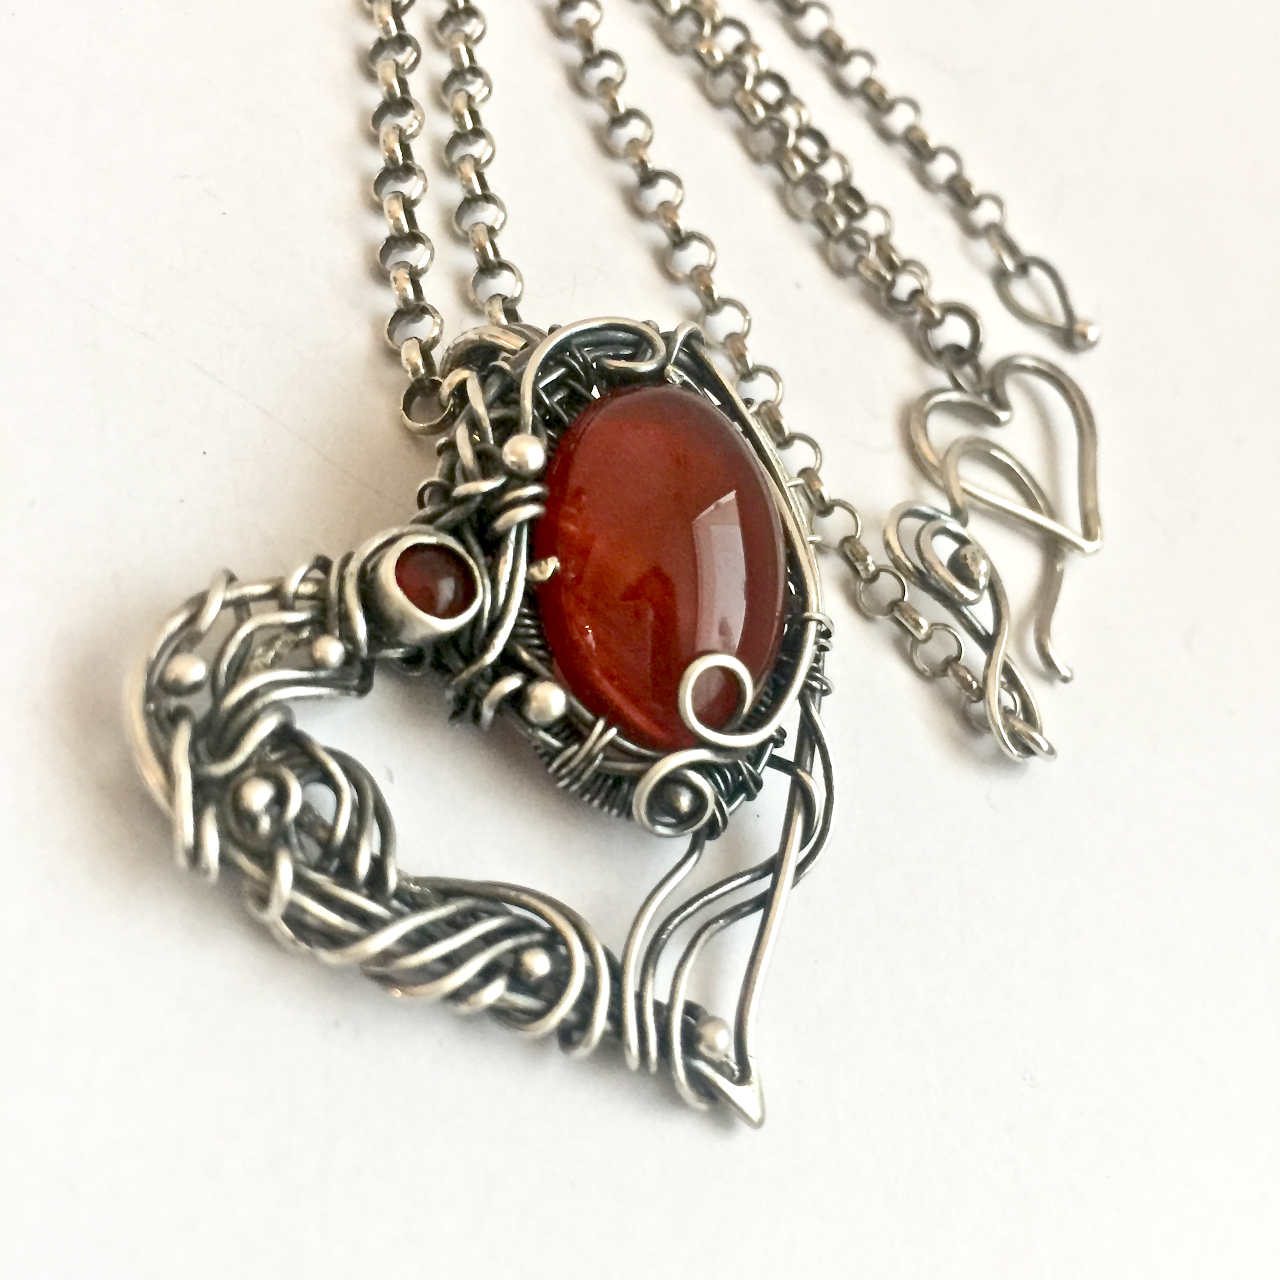 sterling wire designer wrapping pendant present 925 nouvo carnelian heart necklace woman gemstone silver art